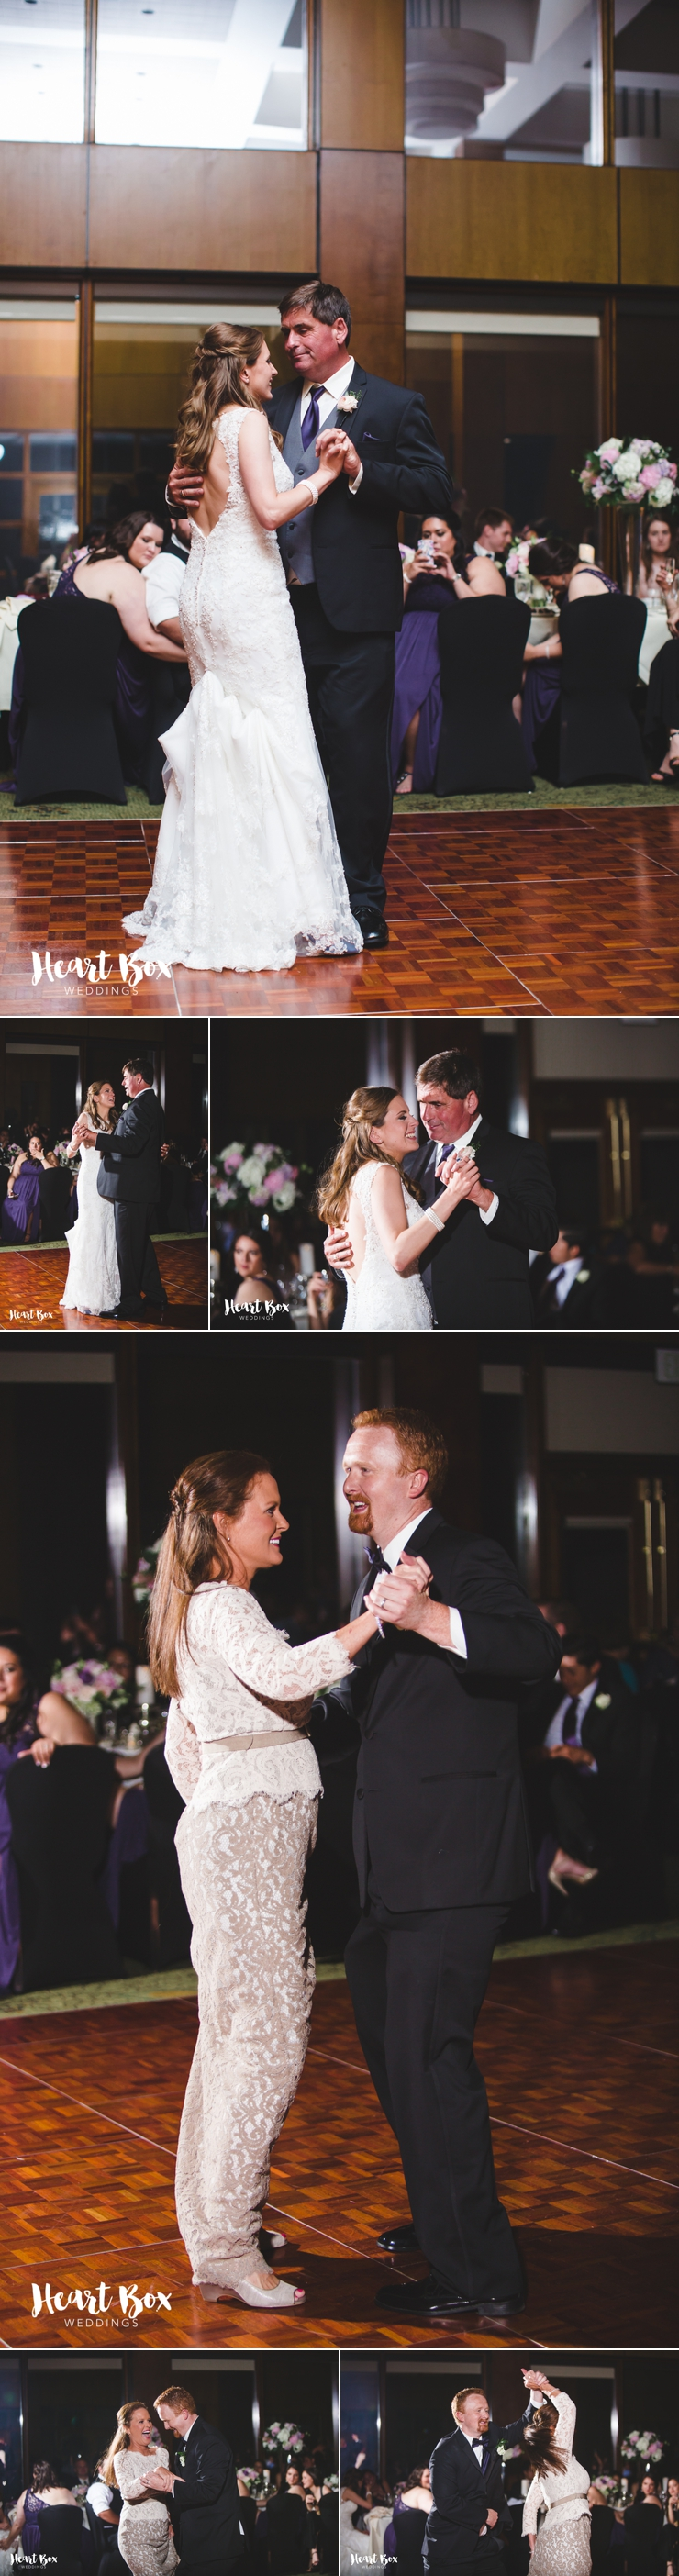 Price Wedding Blog Collages 15.jpg